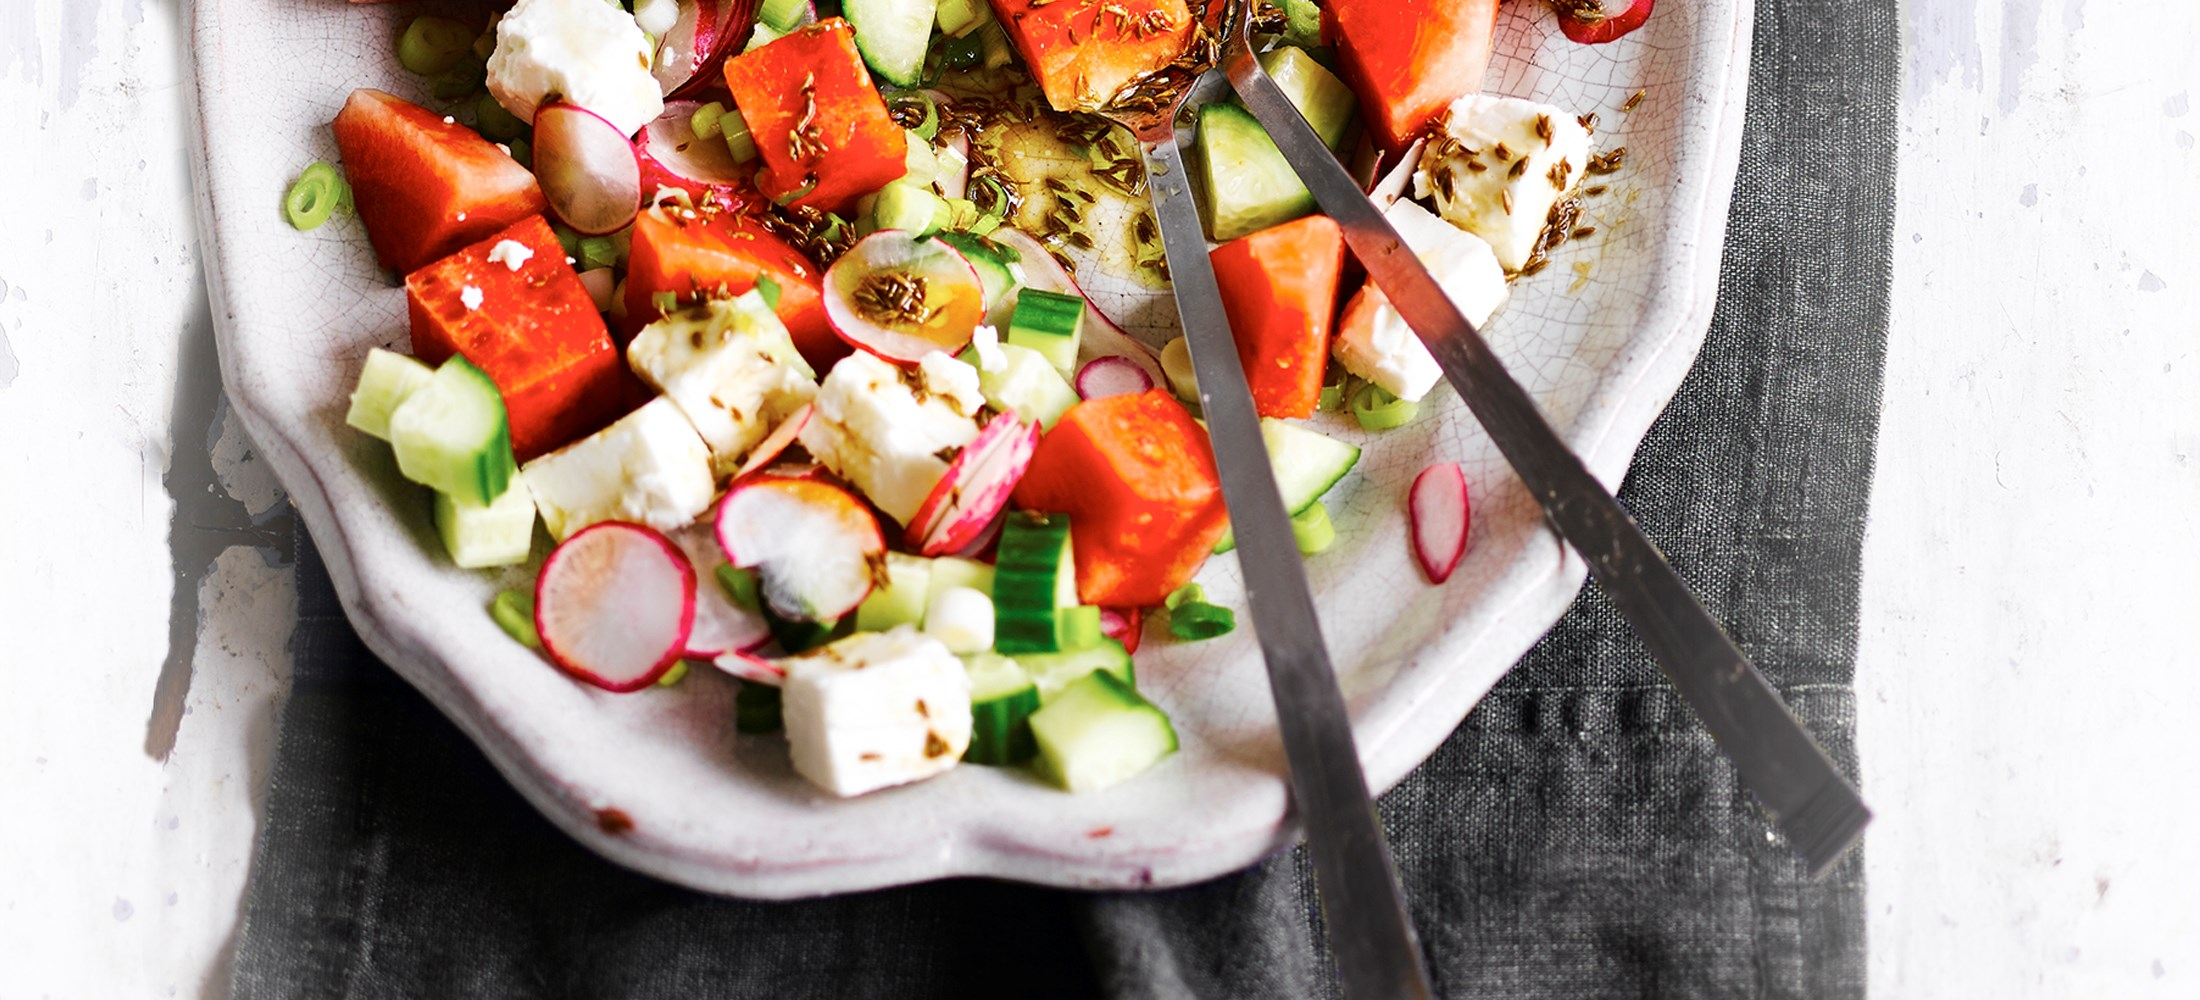 Watermelon Salad with Feta Recipe and Pomegranate dressing served on an oval light coloured serving dish with a salad spoon and fork for serving